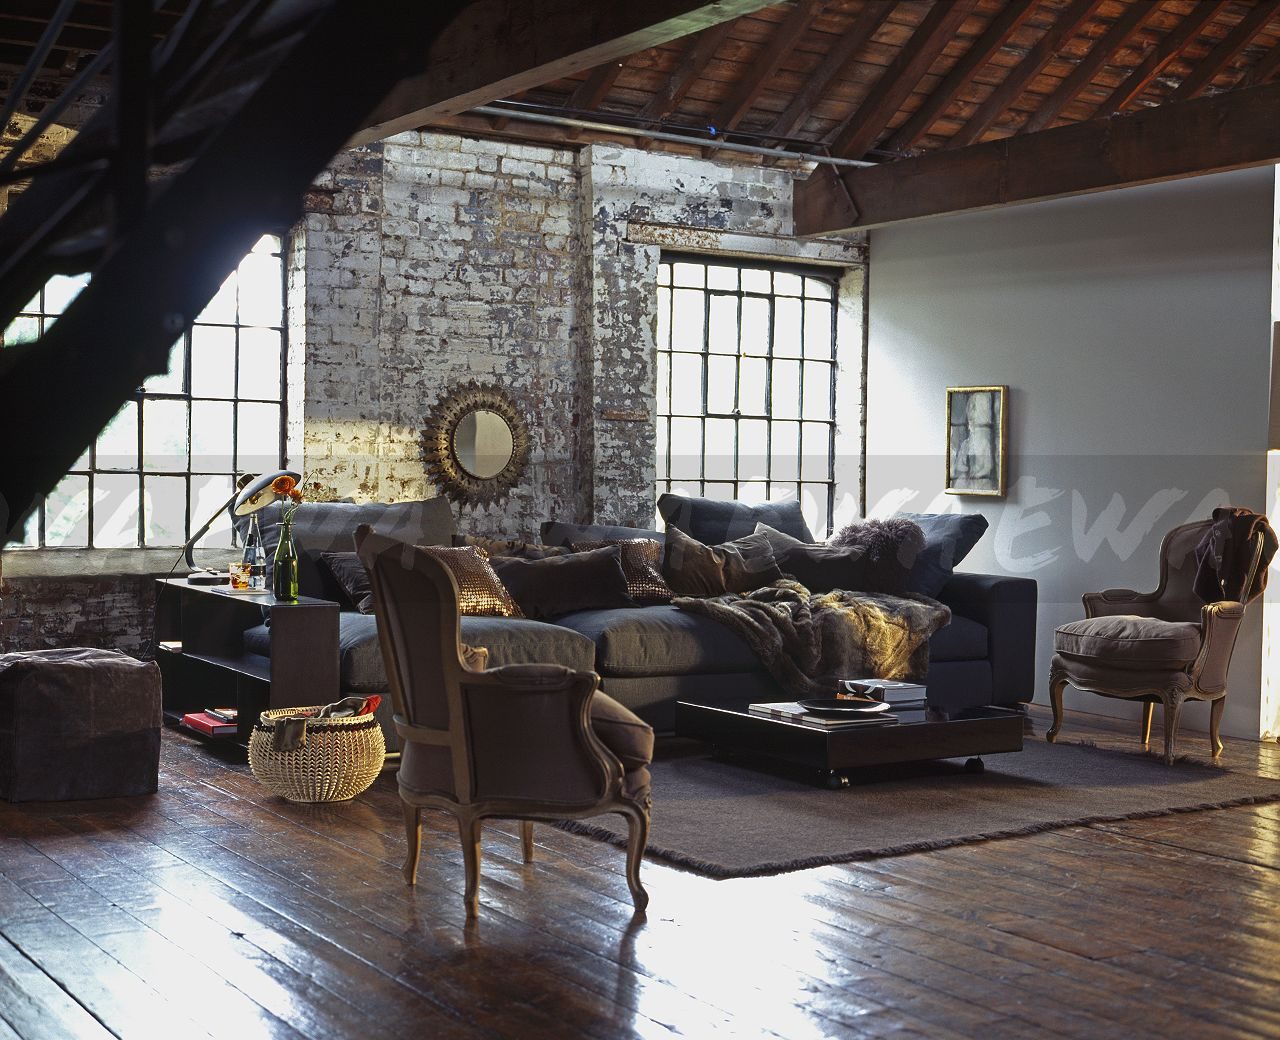 Superbe French Style Armchairs And Wooden Flooring In Loft Conversion Living Room  With Large Sofa Piled With Cushions